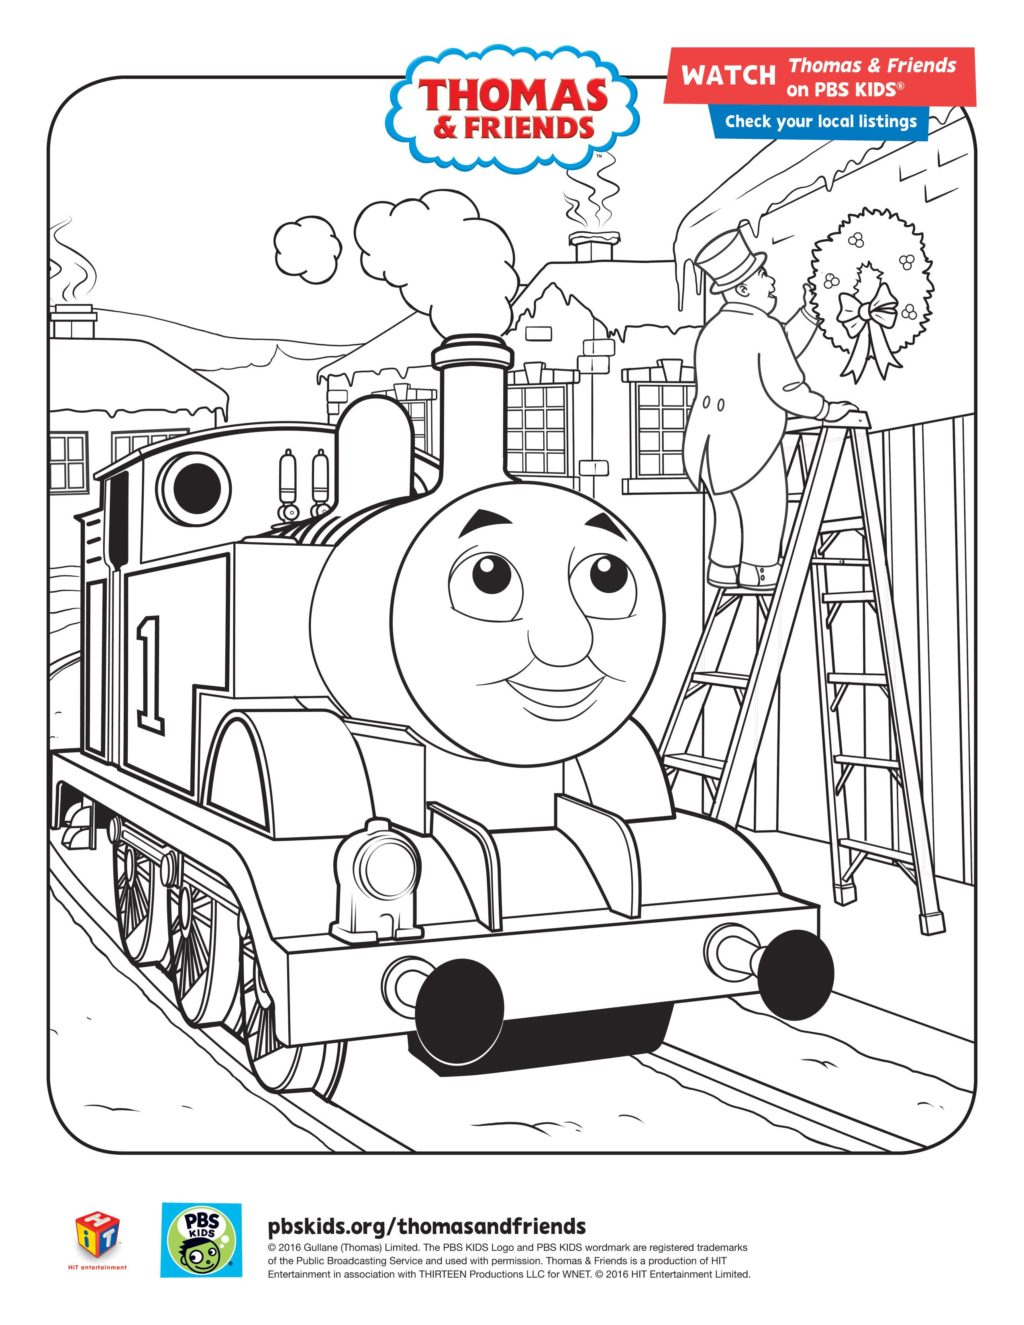 Thomas And Friends Coloring Pages Coloring Book World Stunning Thomas And Friends Coloring Pages